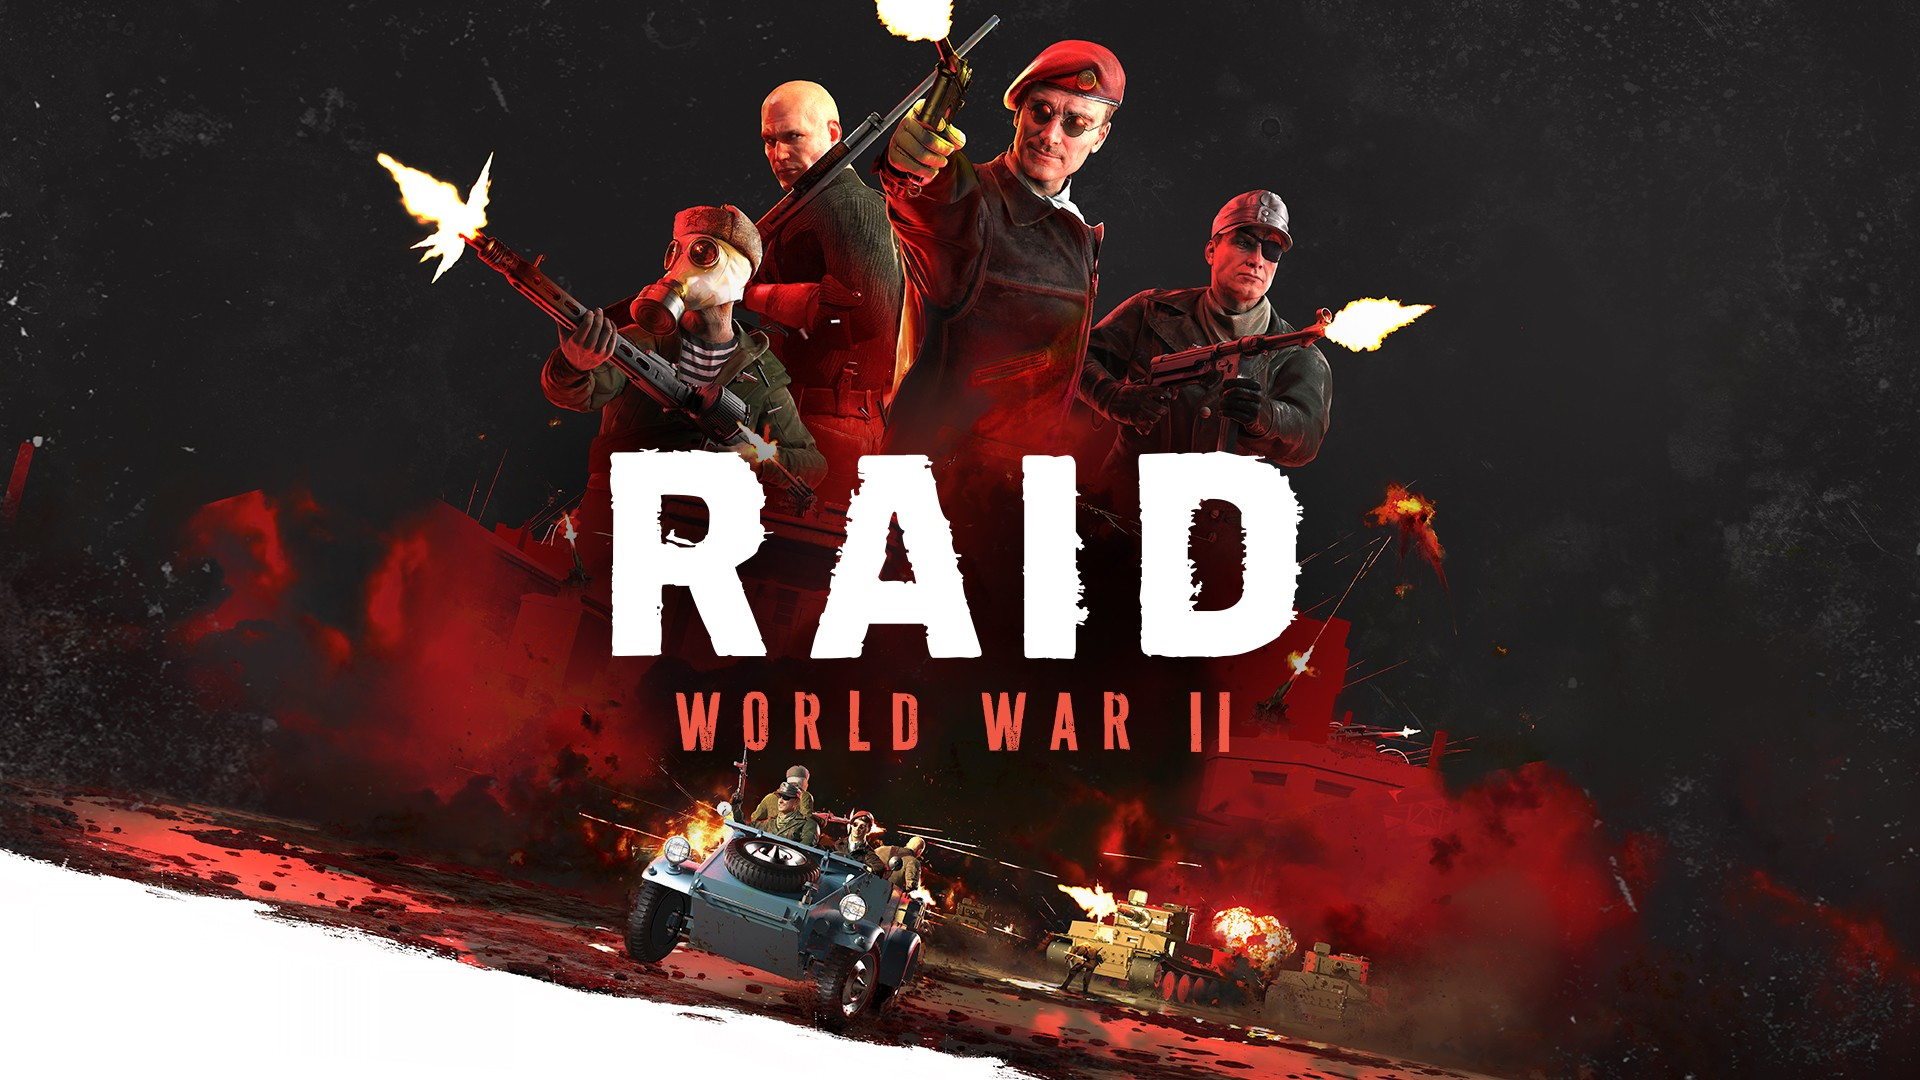 Fight for Freedom and Steal What You Can Through the Underbelly of Hitler's Third Reich in RAID: World War II